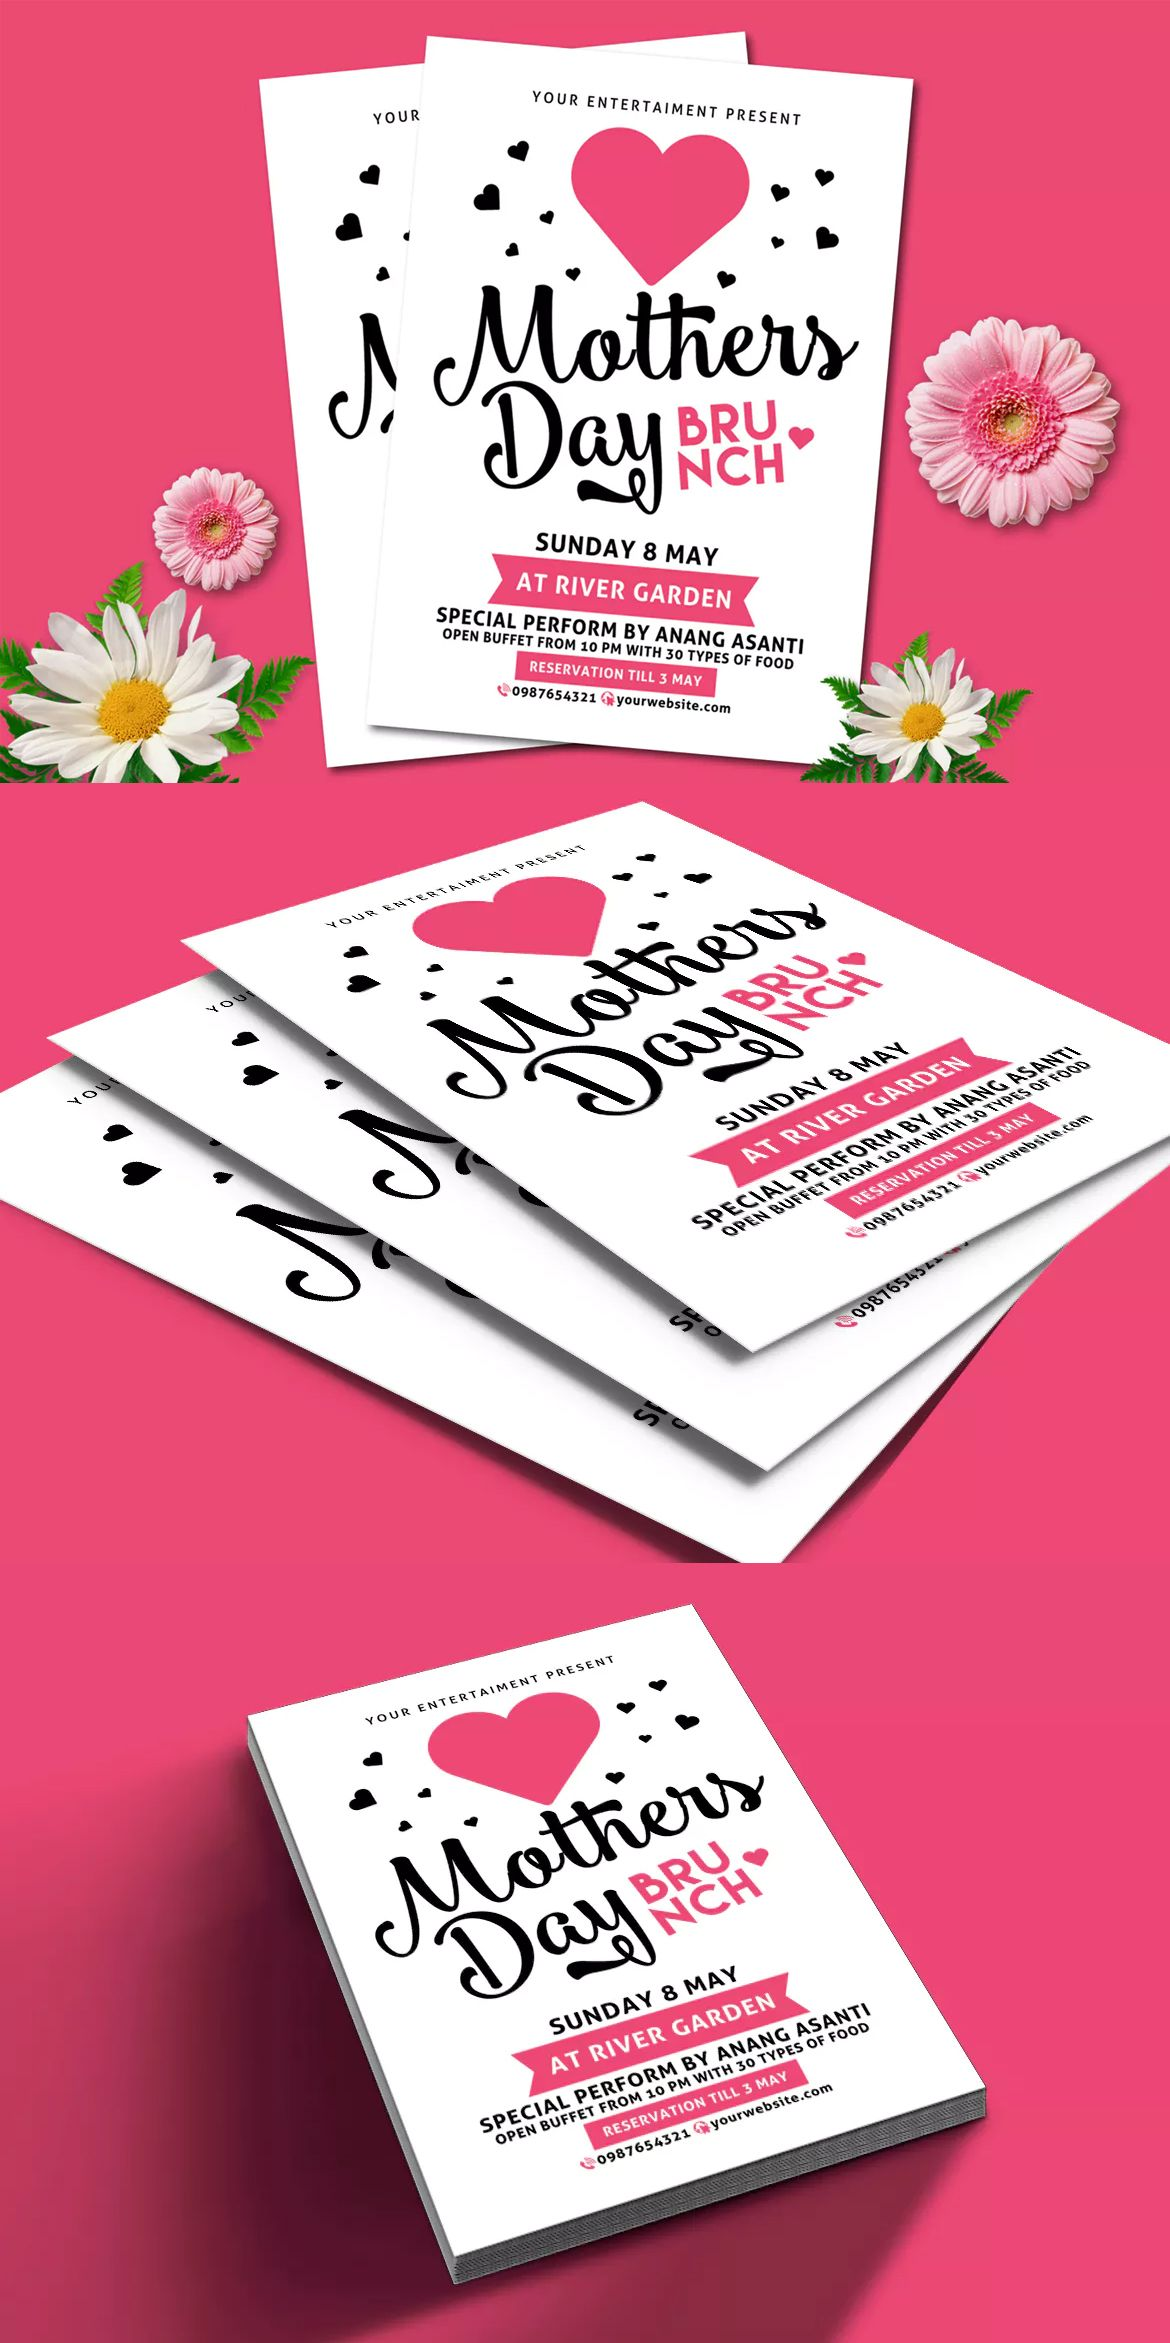 Mothers Day Brunch Flyer Template Psd  Flyer Design Templates